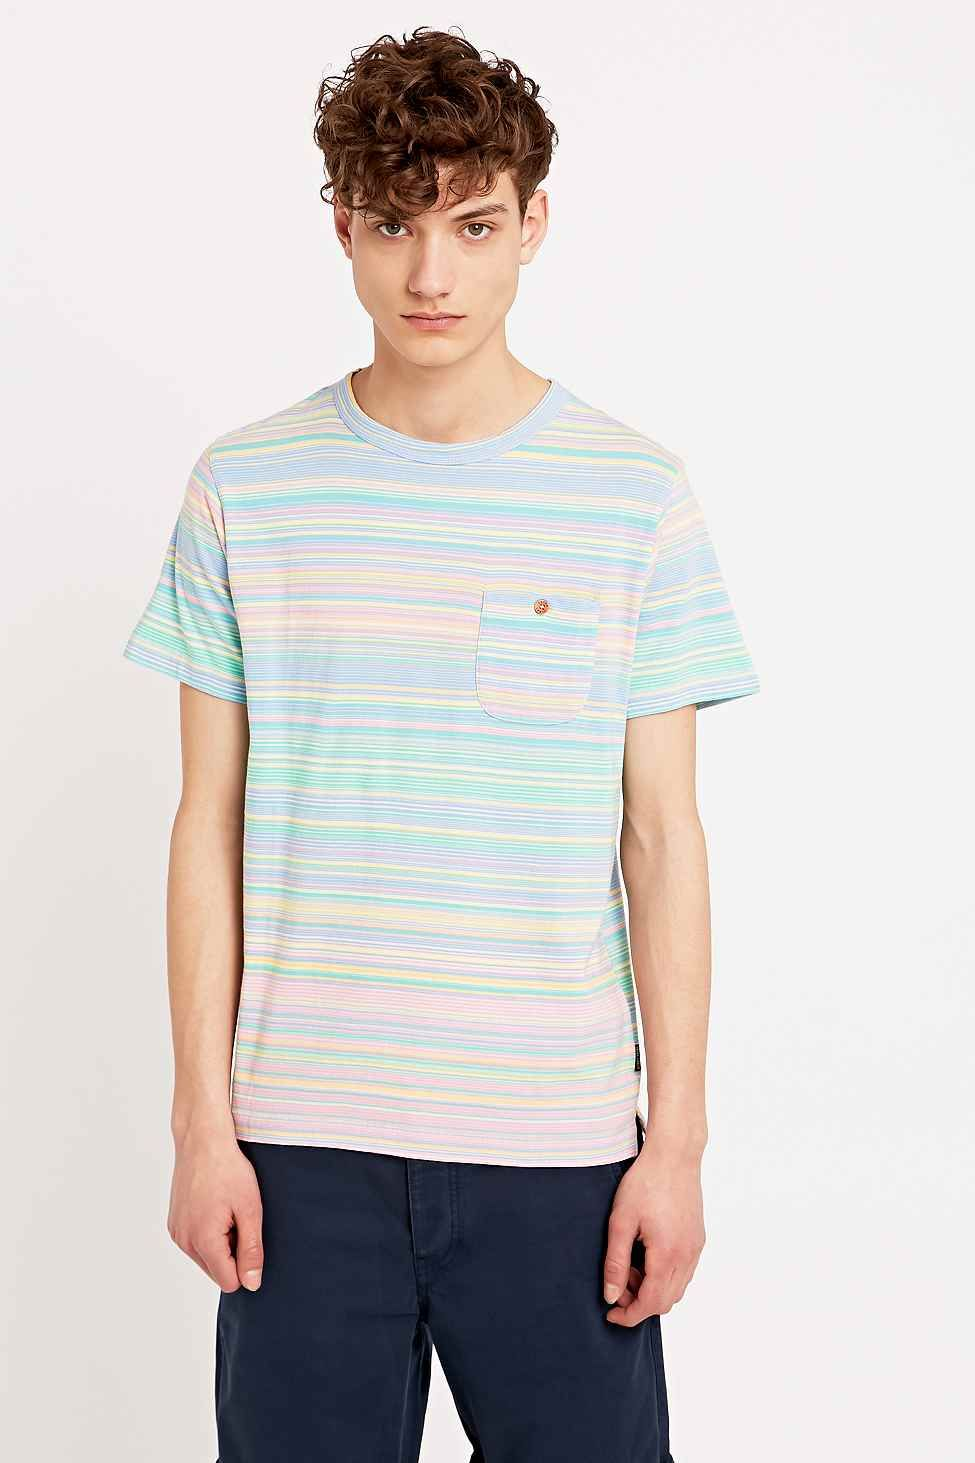 Latest styles · Shore Leave by Urban Outfitters Simpson Stripe Tee in Pink